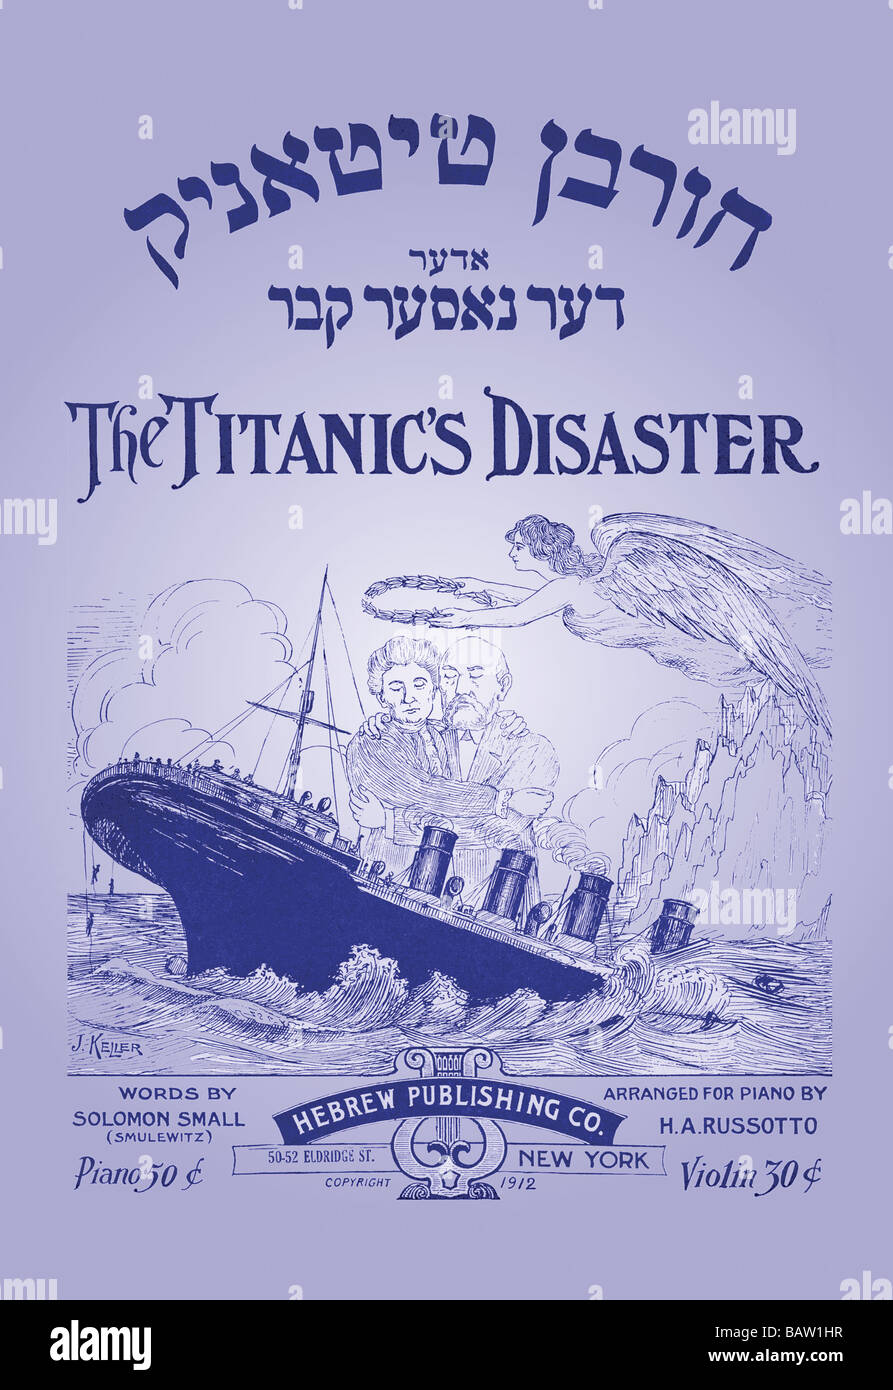 The Titanic's Disaster - Stock Image